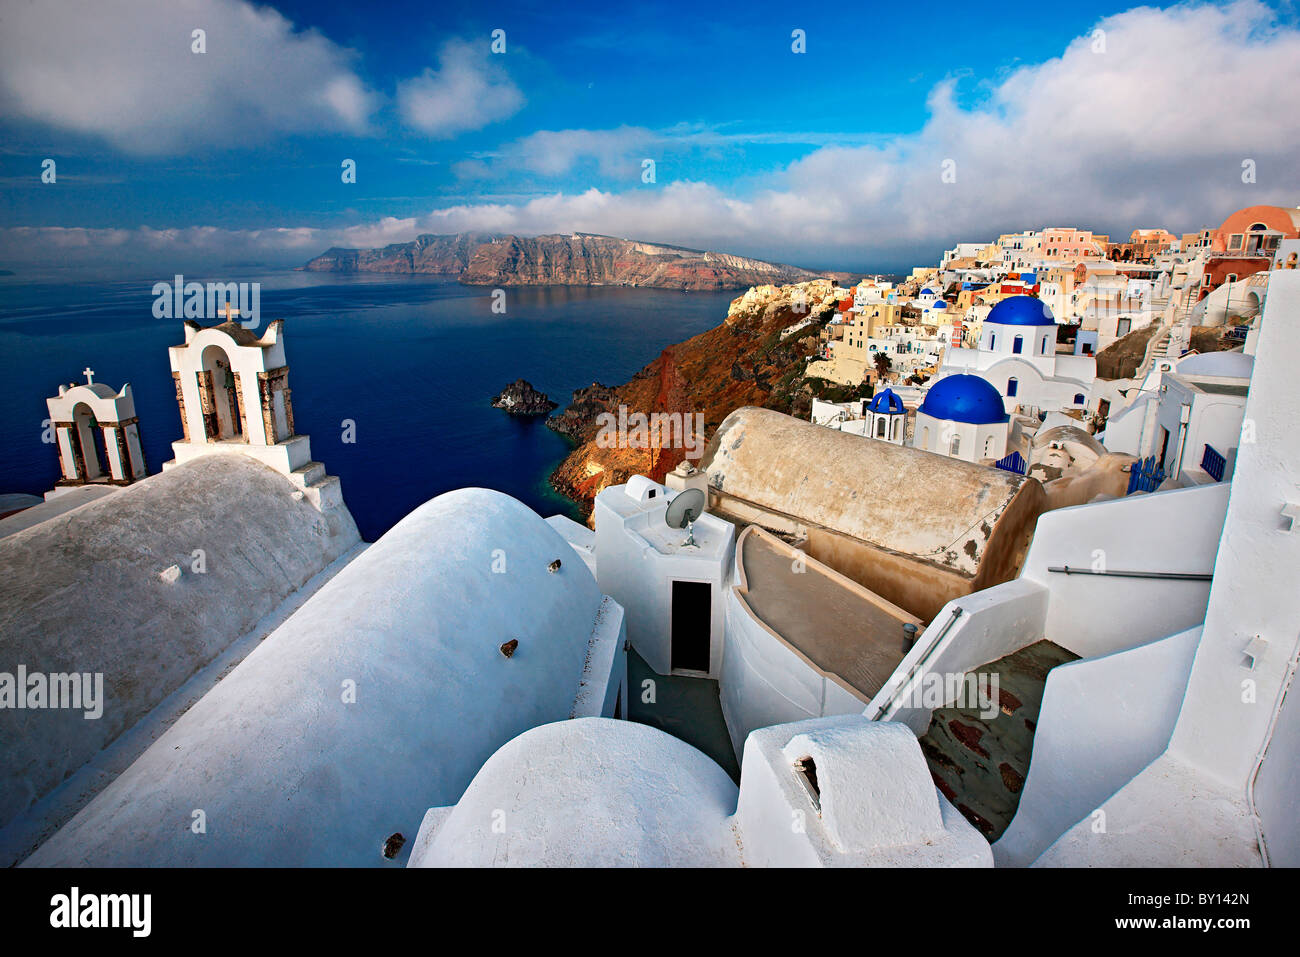 Santorini island, wide angle view of picturesque Oia village, hanging over the caldera. In the background, Thirasia - Stock Image